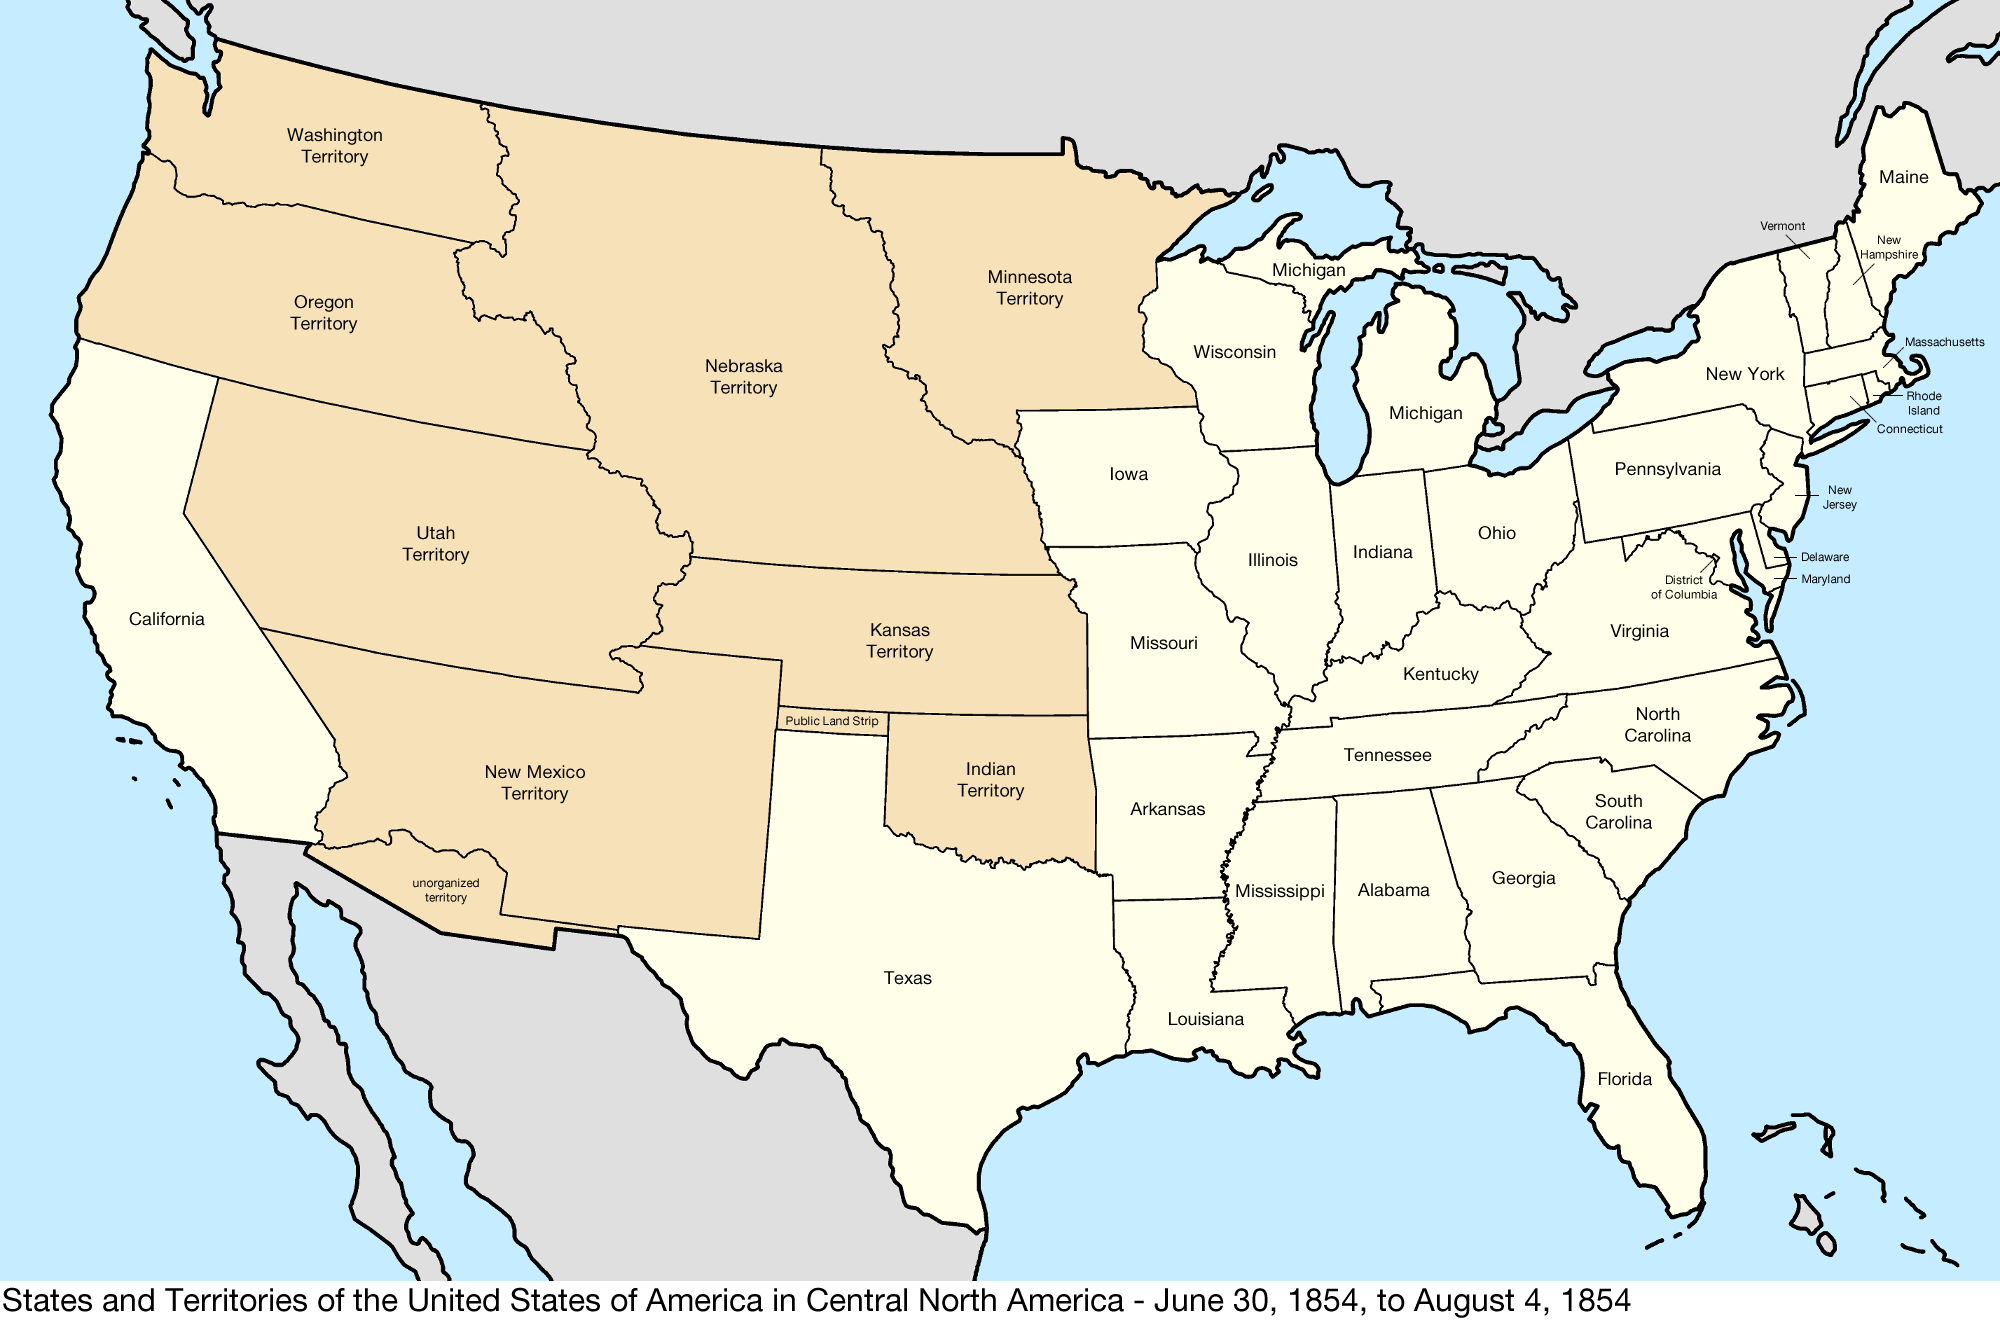 File United States Central Map 1854 06 30 To 1854 08